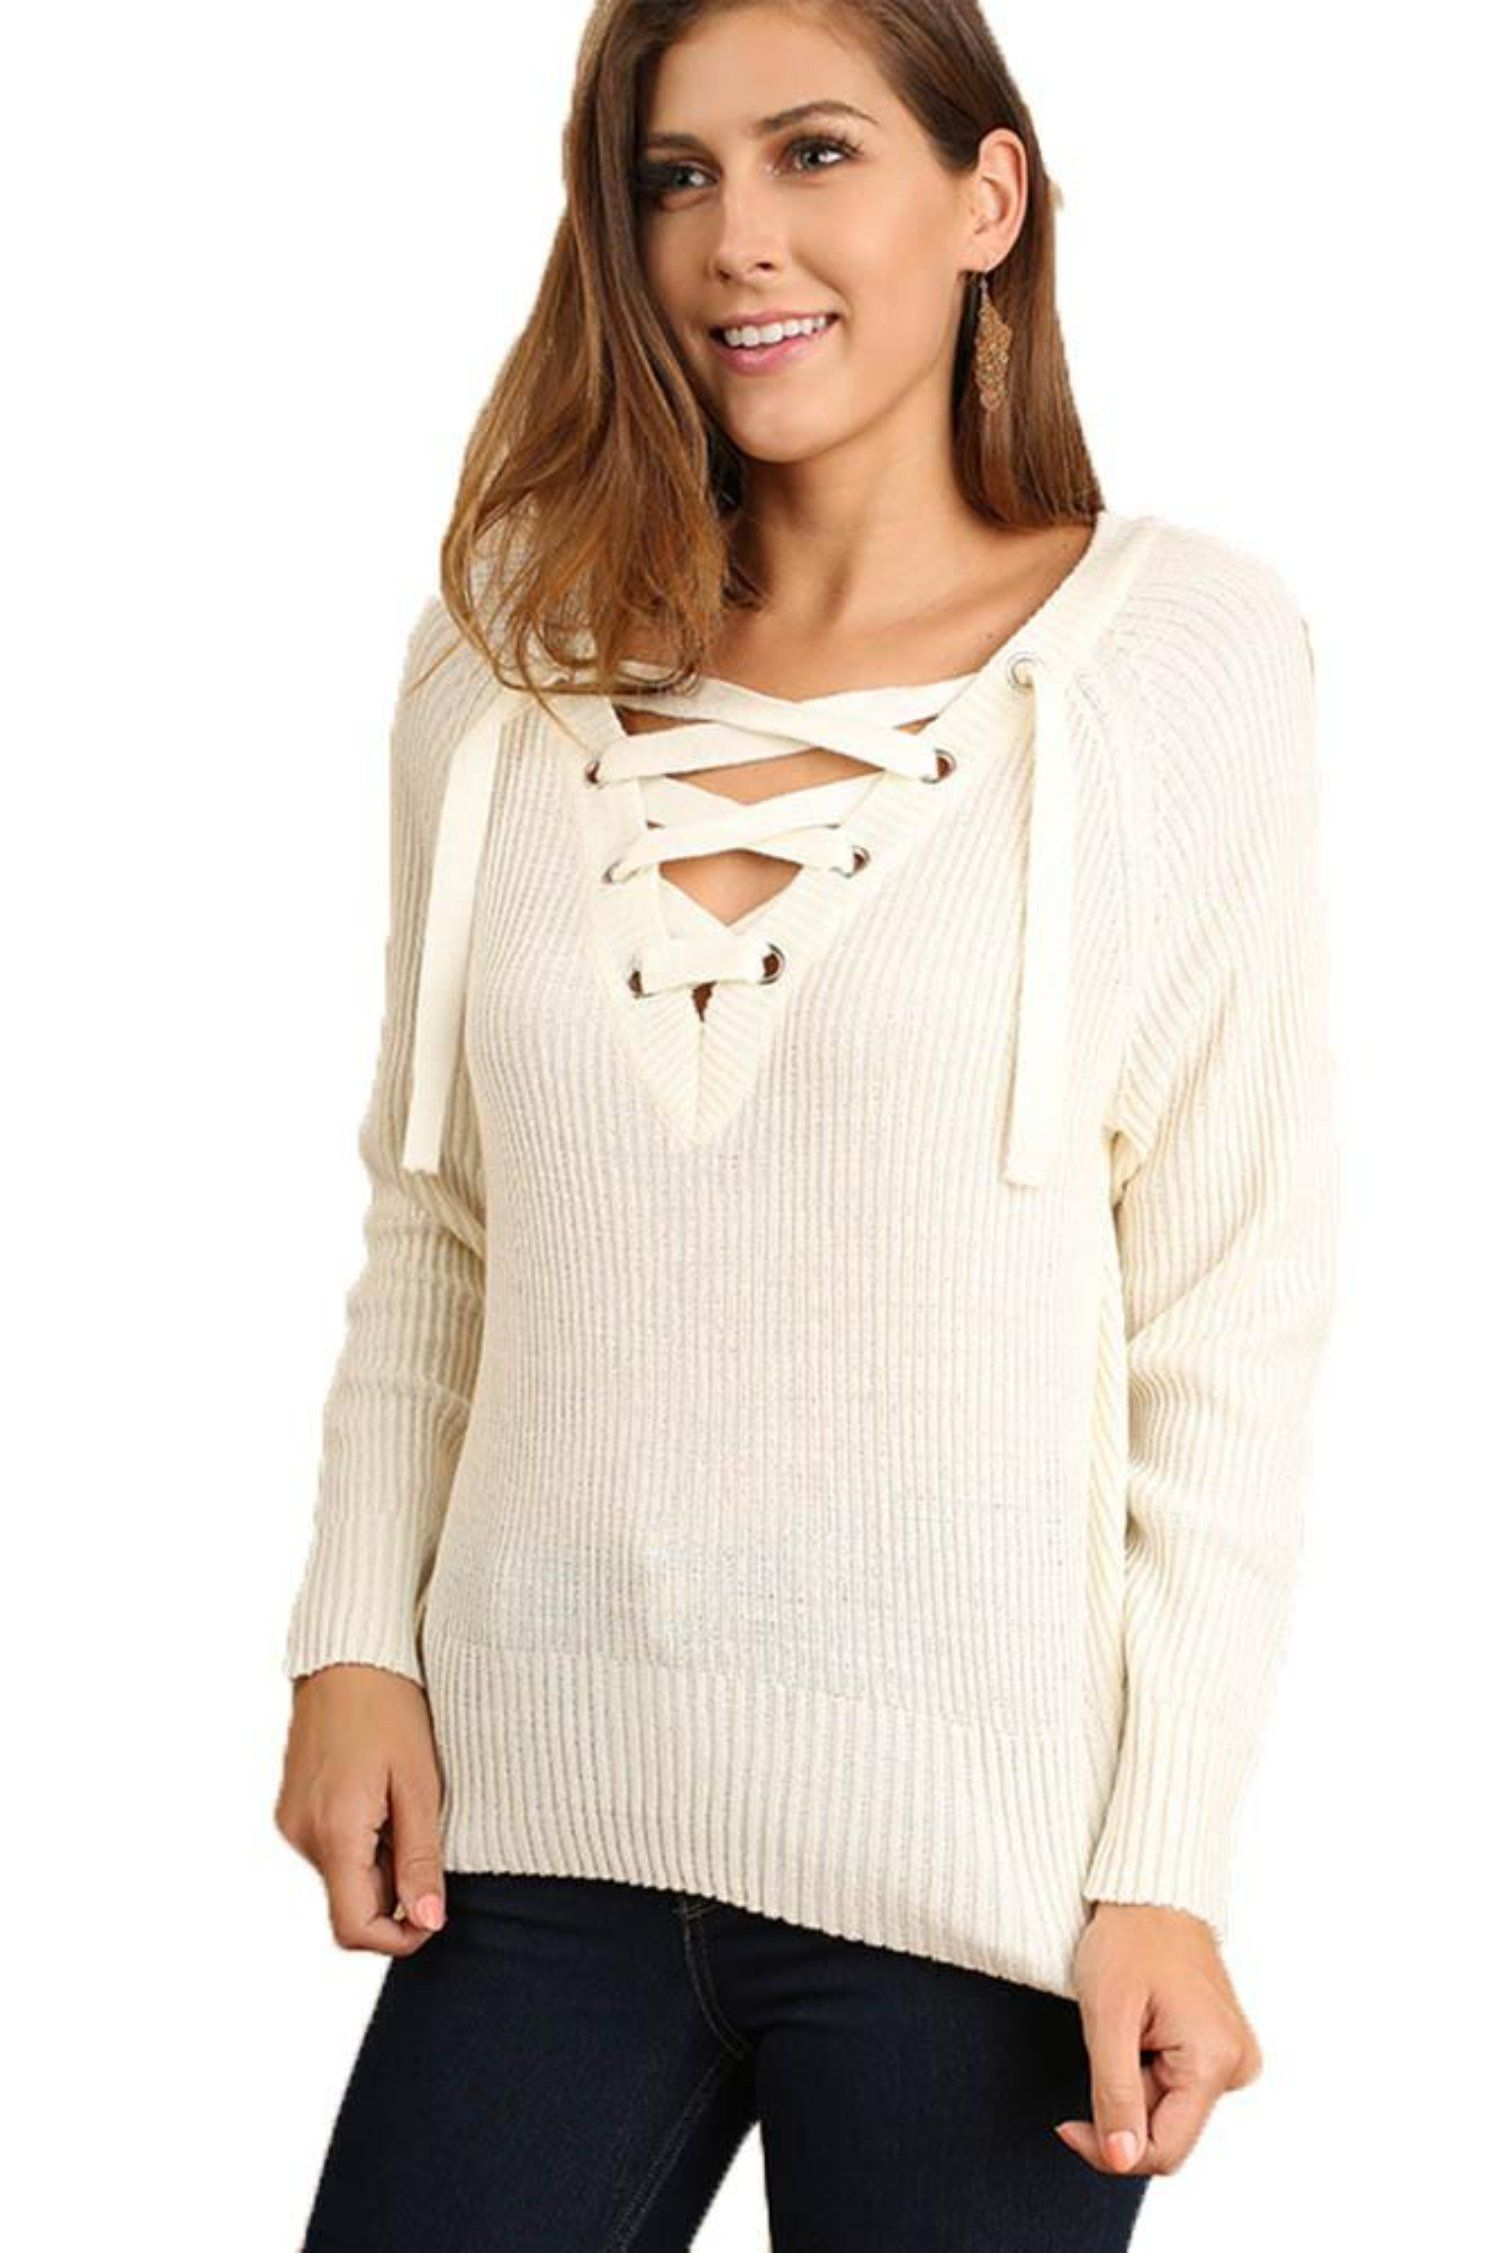 617a76b45c Umgee Women s Cream Knit Sweater with Grommet Lace-Up